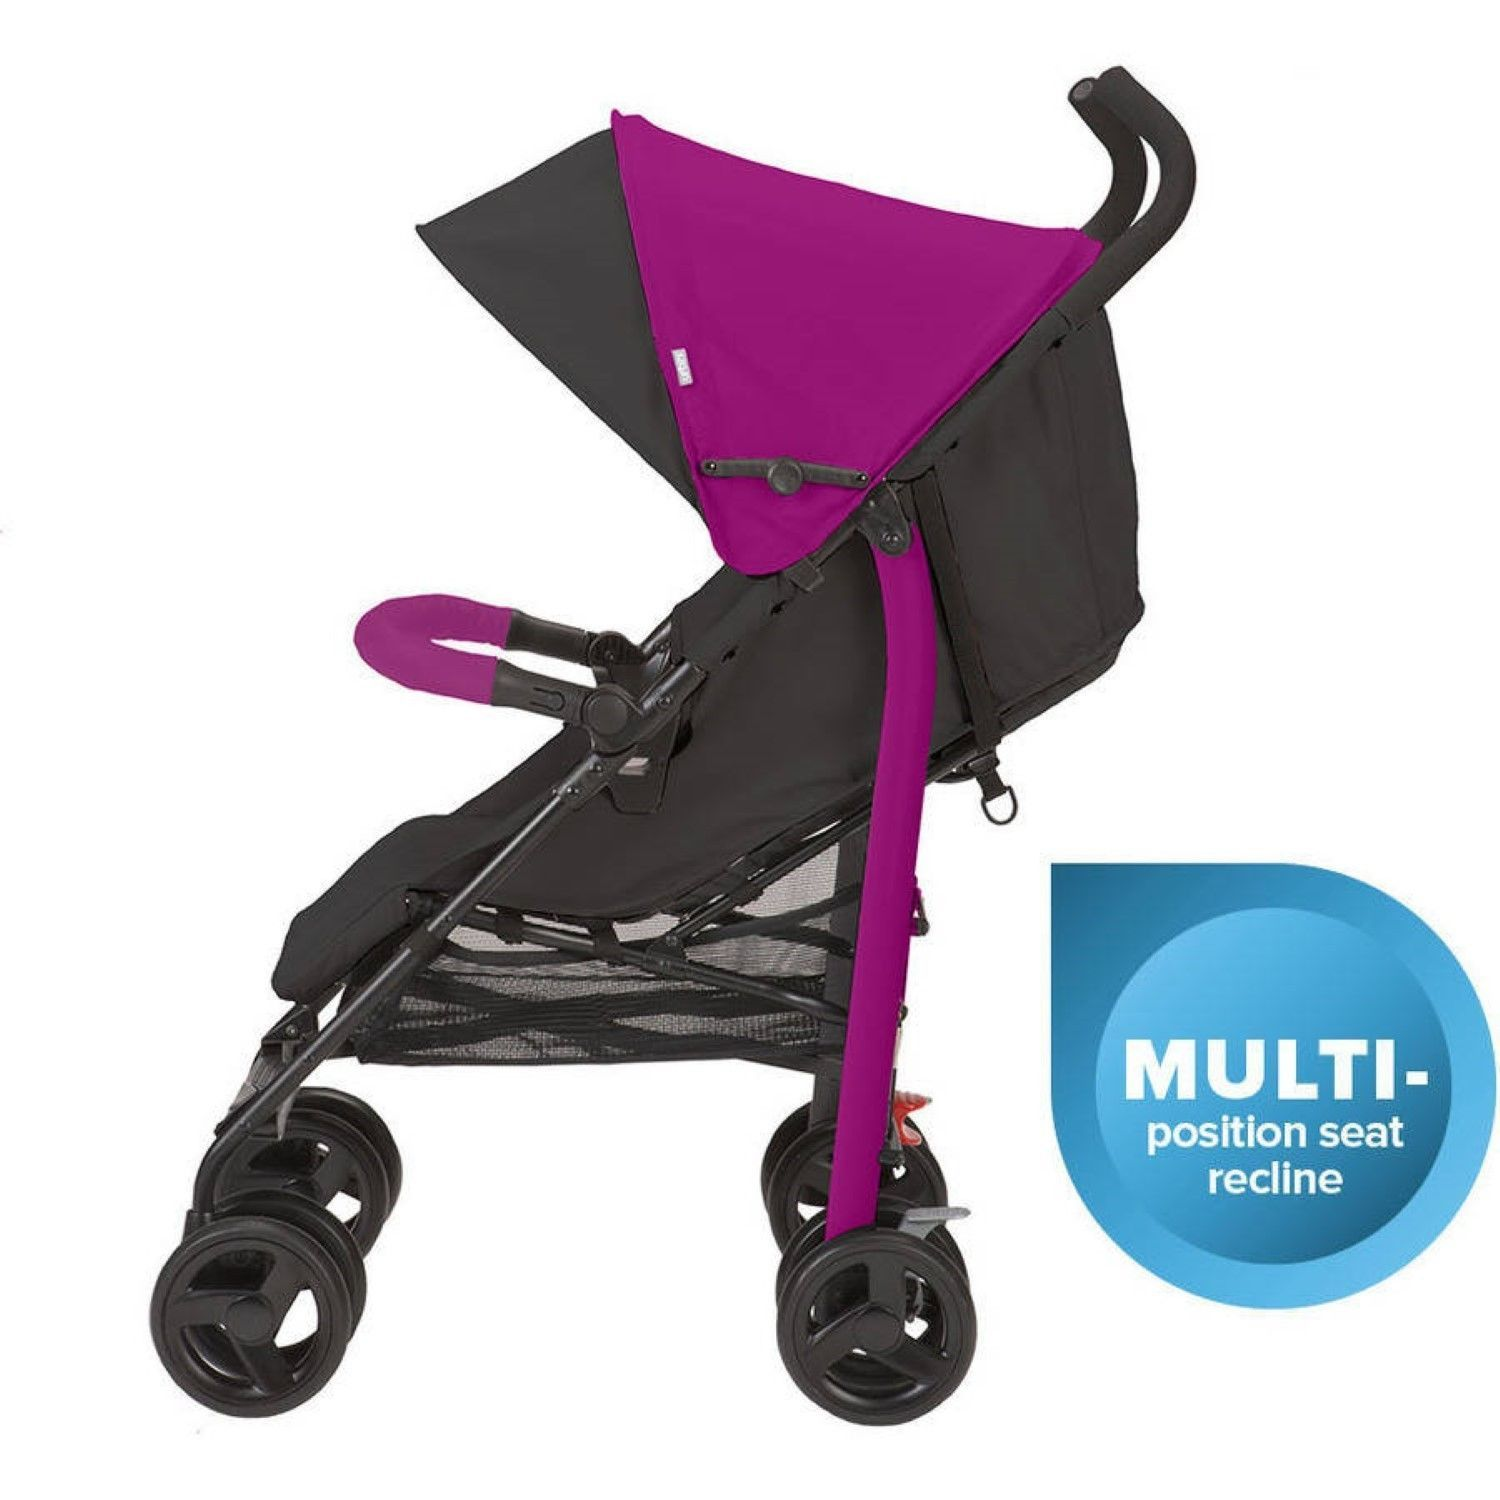 It accepts the Urbini Sonti infant car seat with included